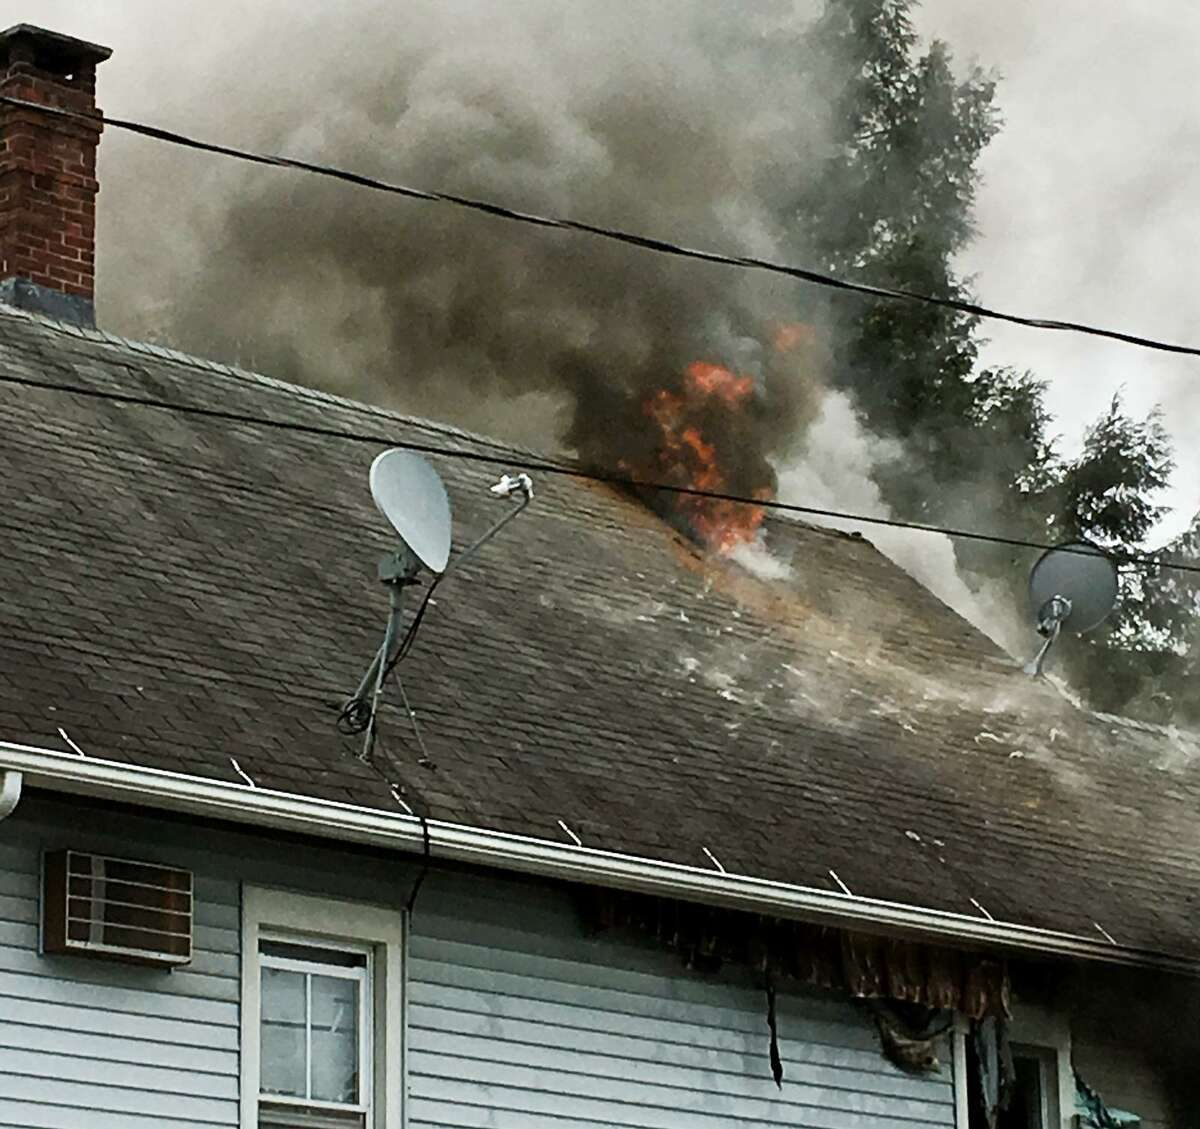 Firefighters are responded to a two-alarm blaze at a house on Hubbell Street between Sixth Street and Seventh Street in Ansonia, Conn. on Tuesday, May 23, 2017.